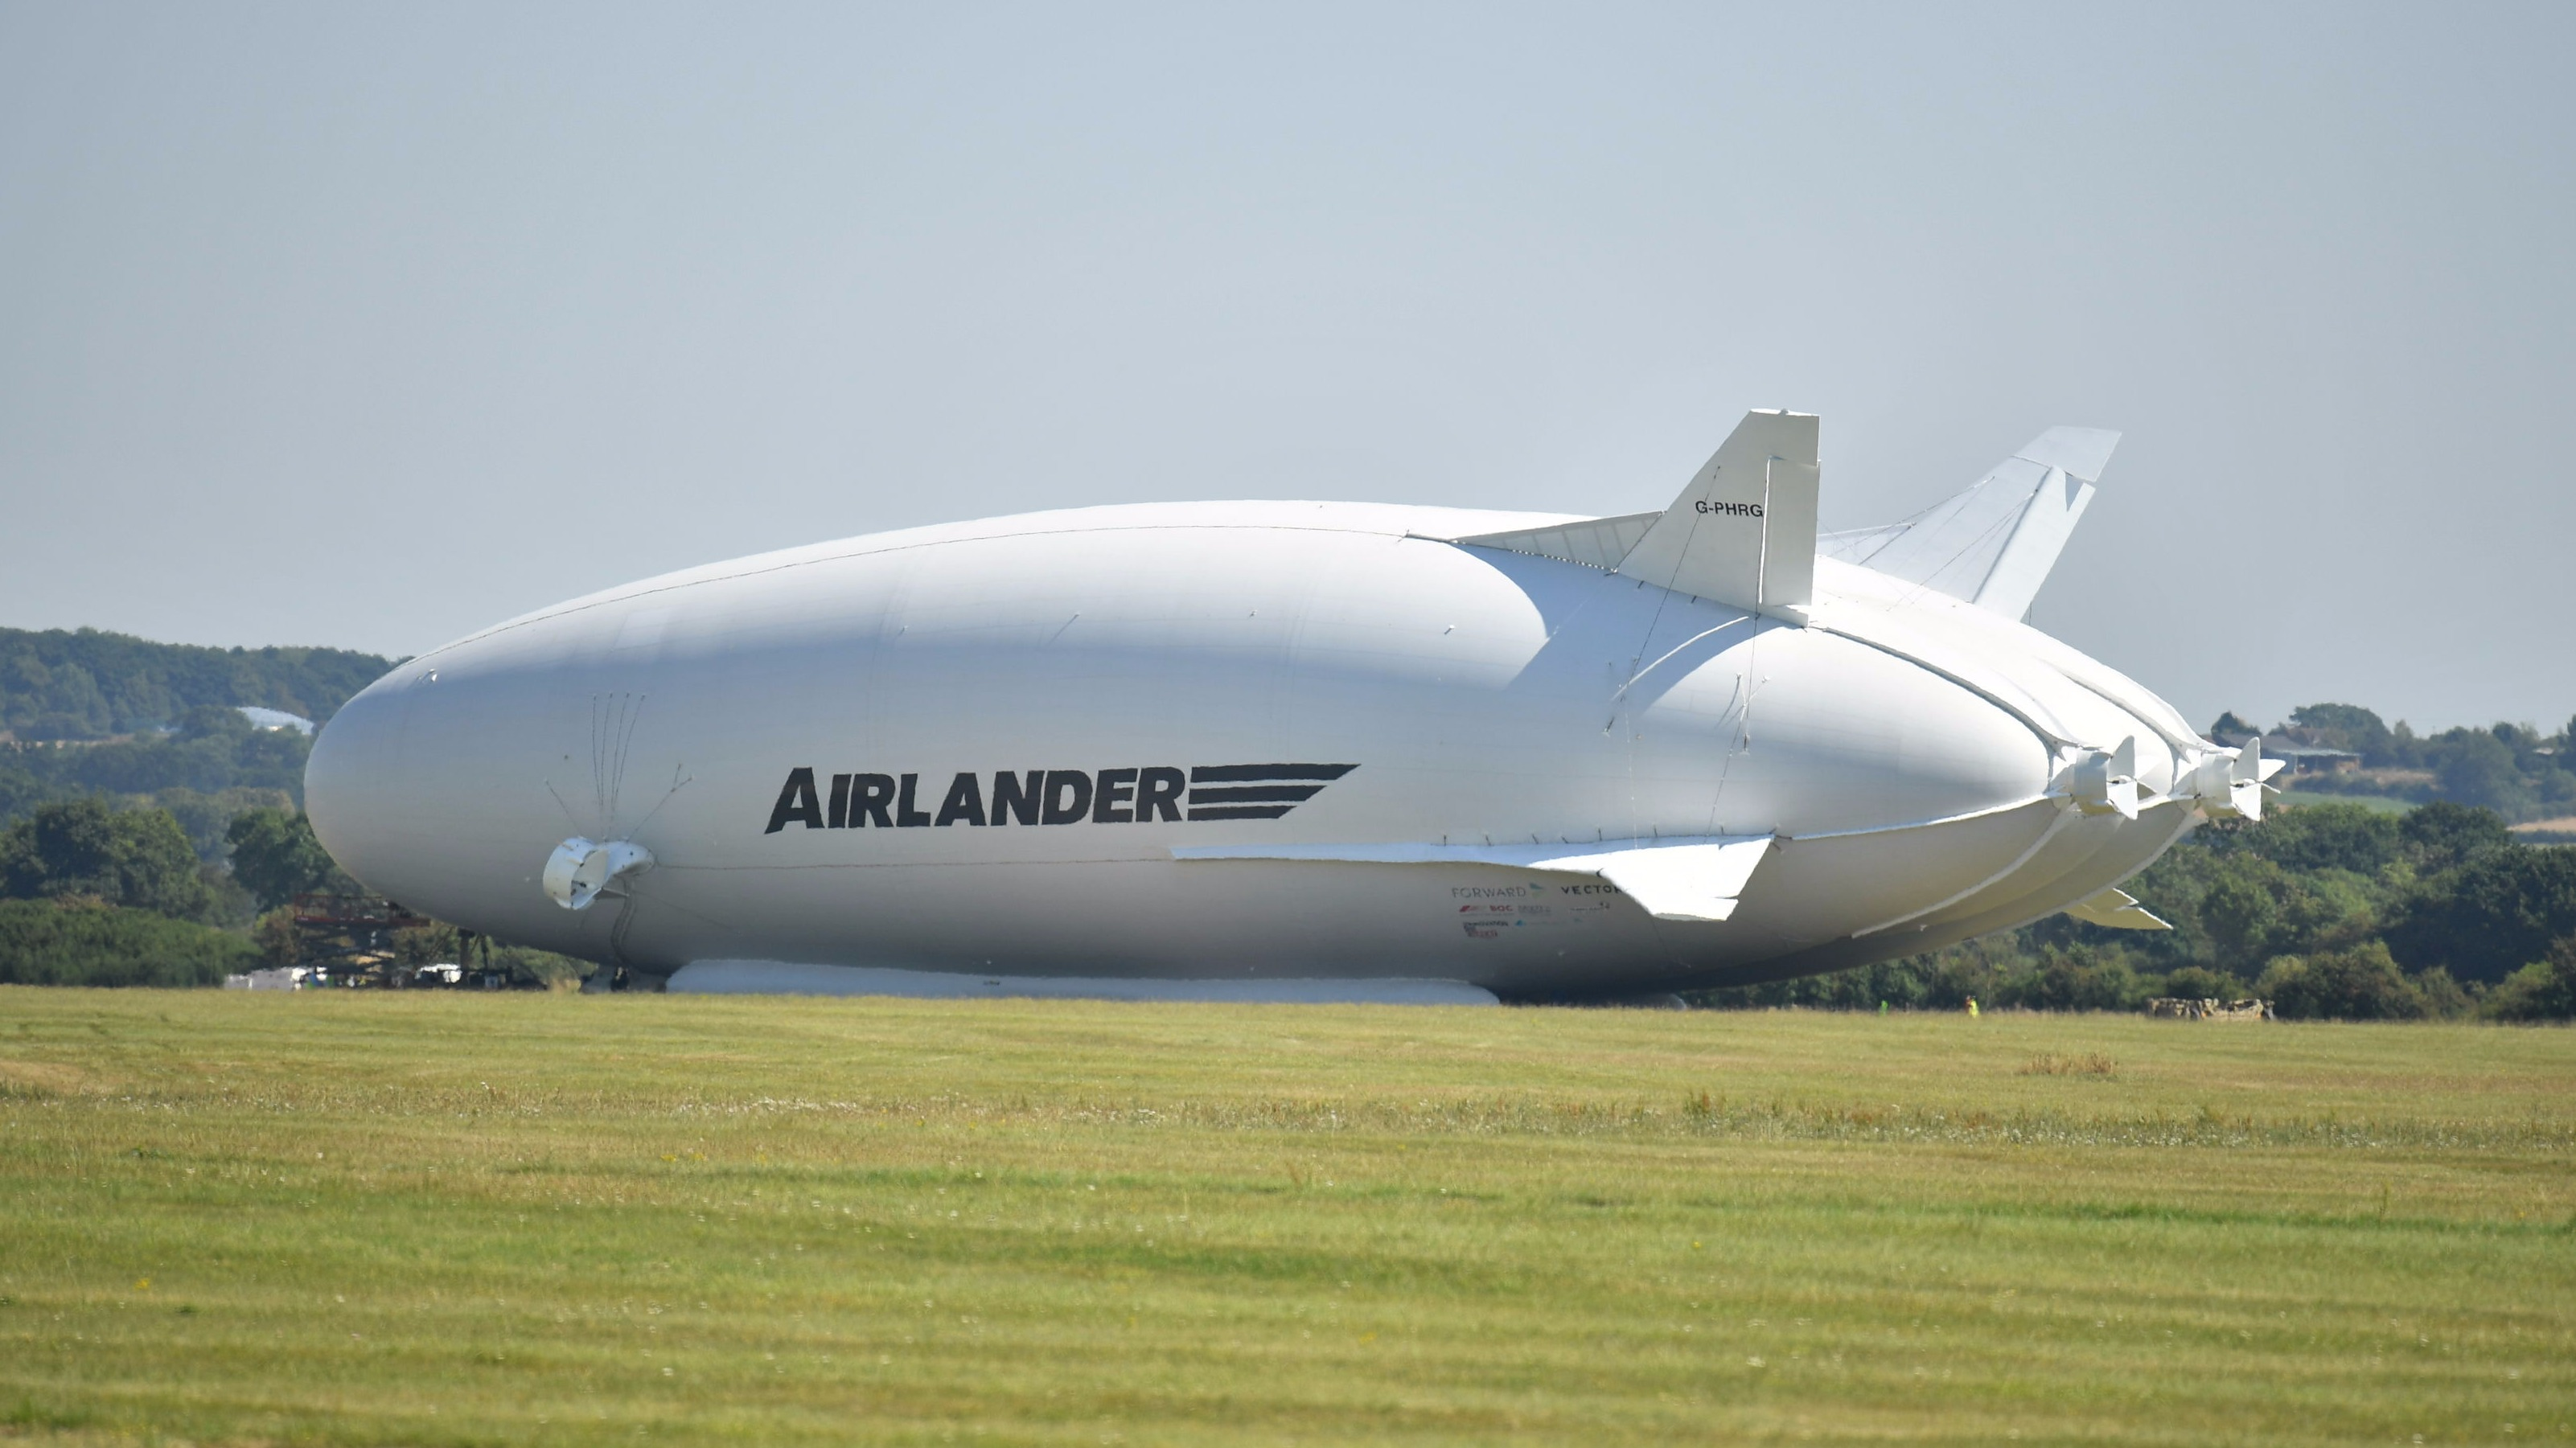 World's largest aircraft Airlander 10 crashes in second ...